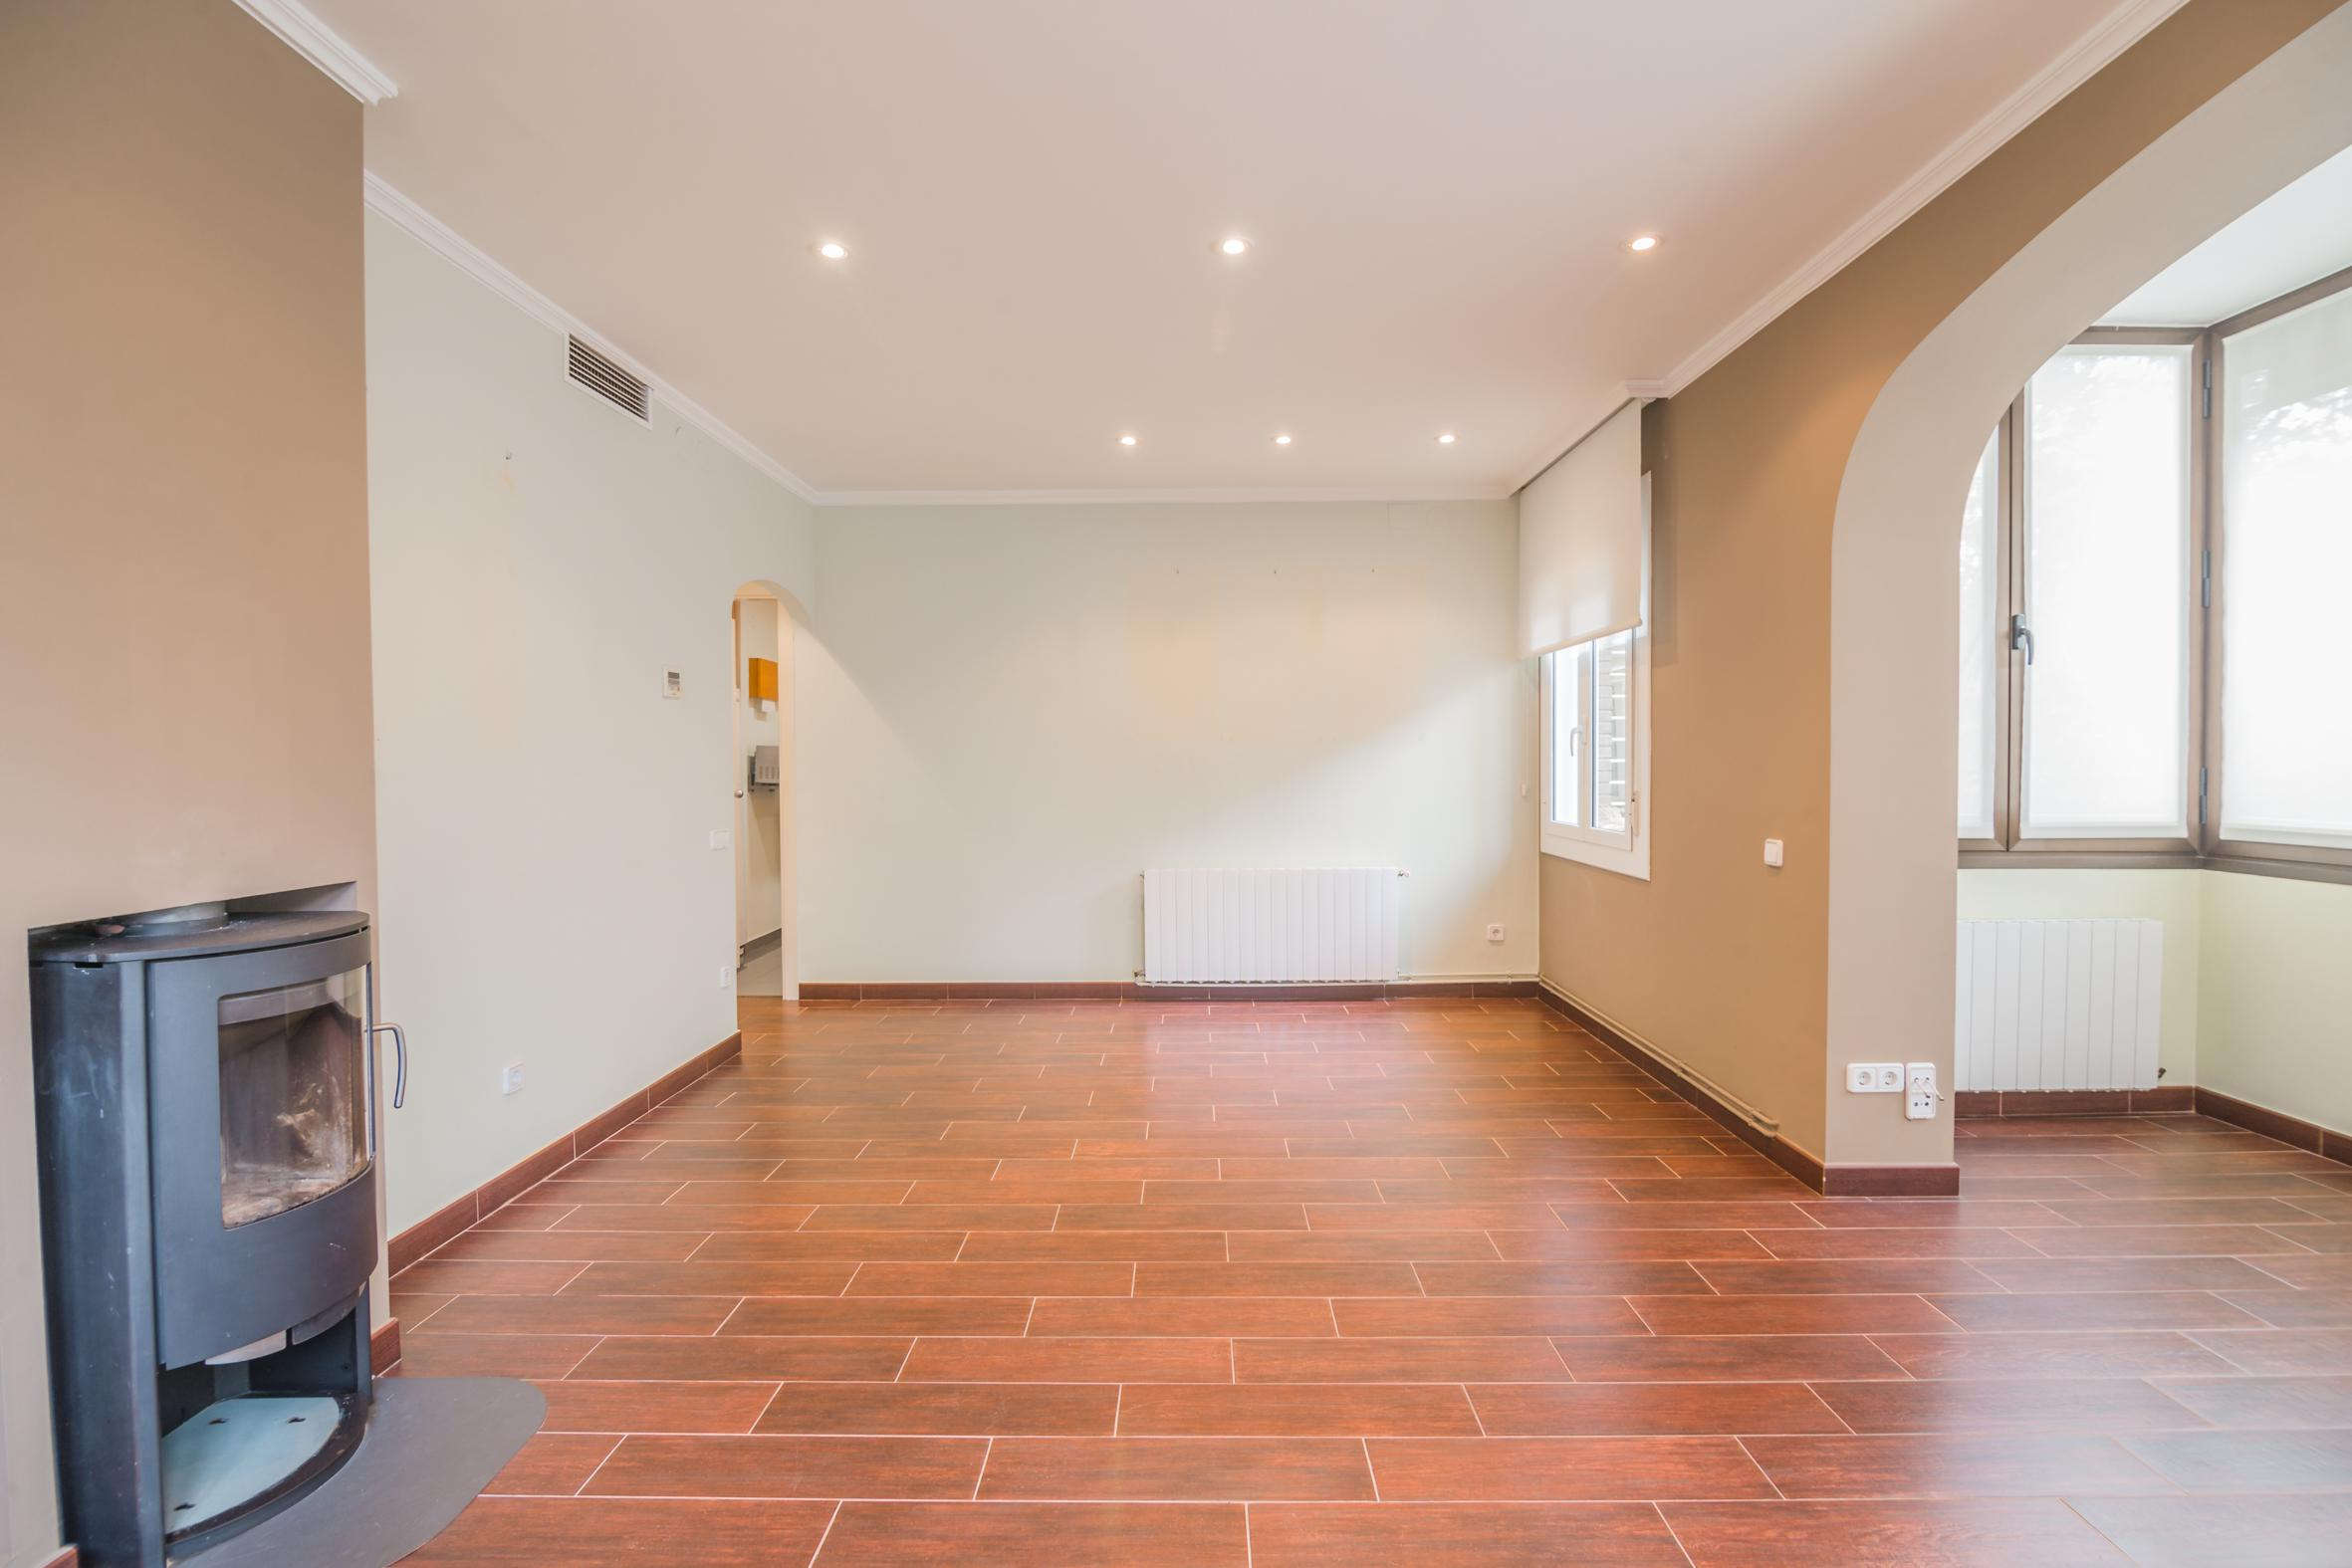 246902 Flat for sale in Les Corts, Pedralbes 2